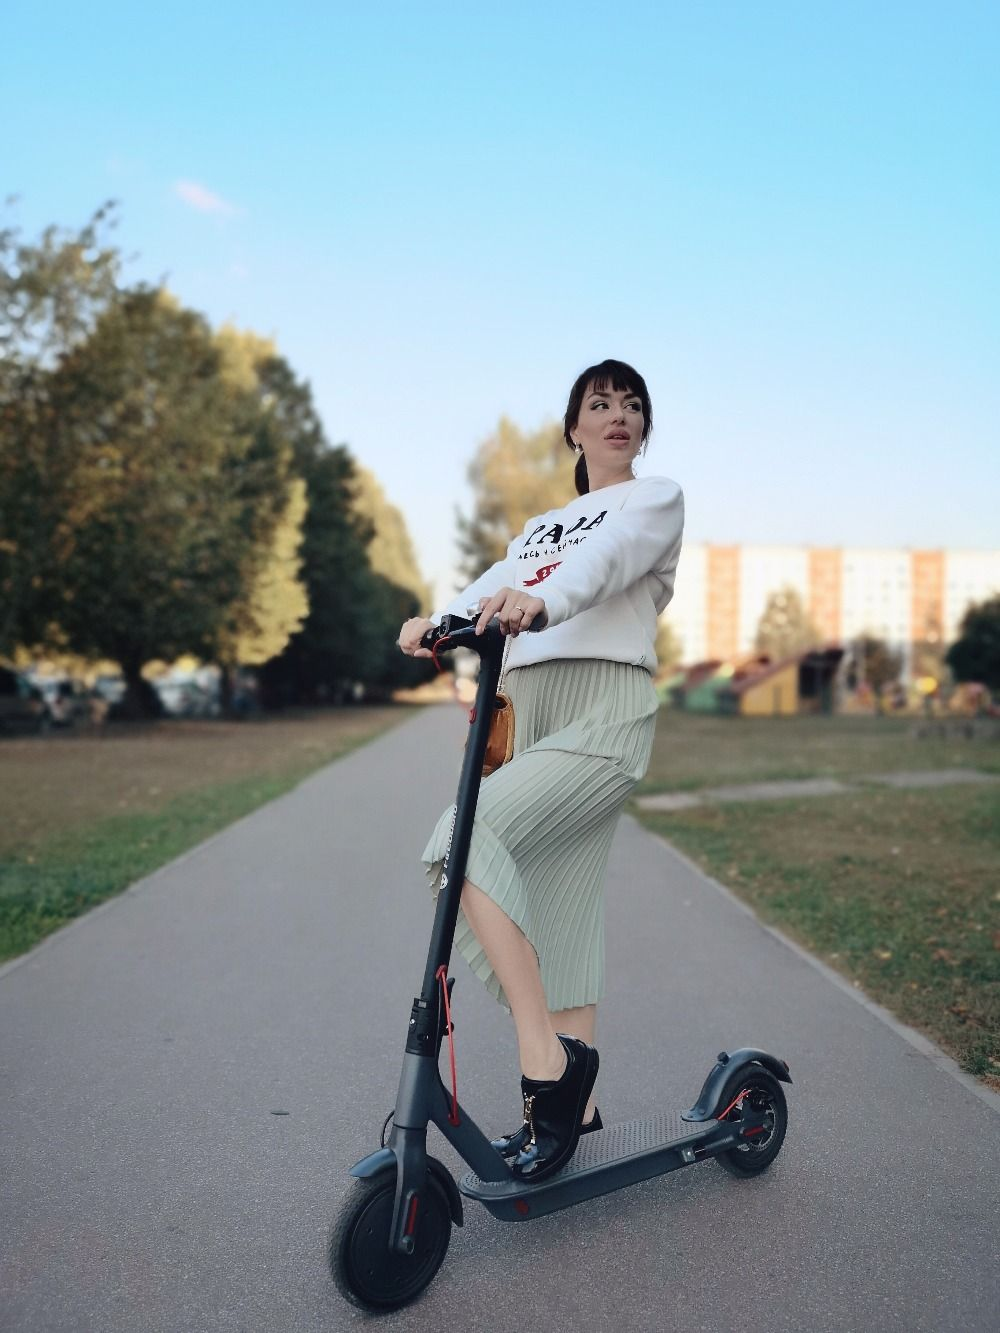 SUPERTEFF EW6 electric scooter 30km folding kiki scooter 8.5 inch solid tires two wheel scooter easy to carry and storage